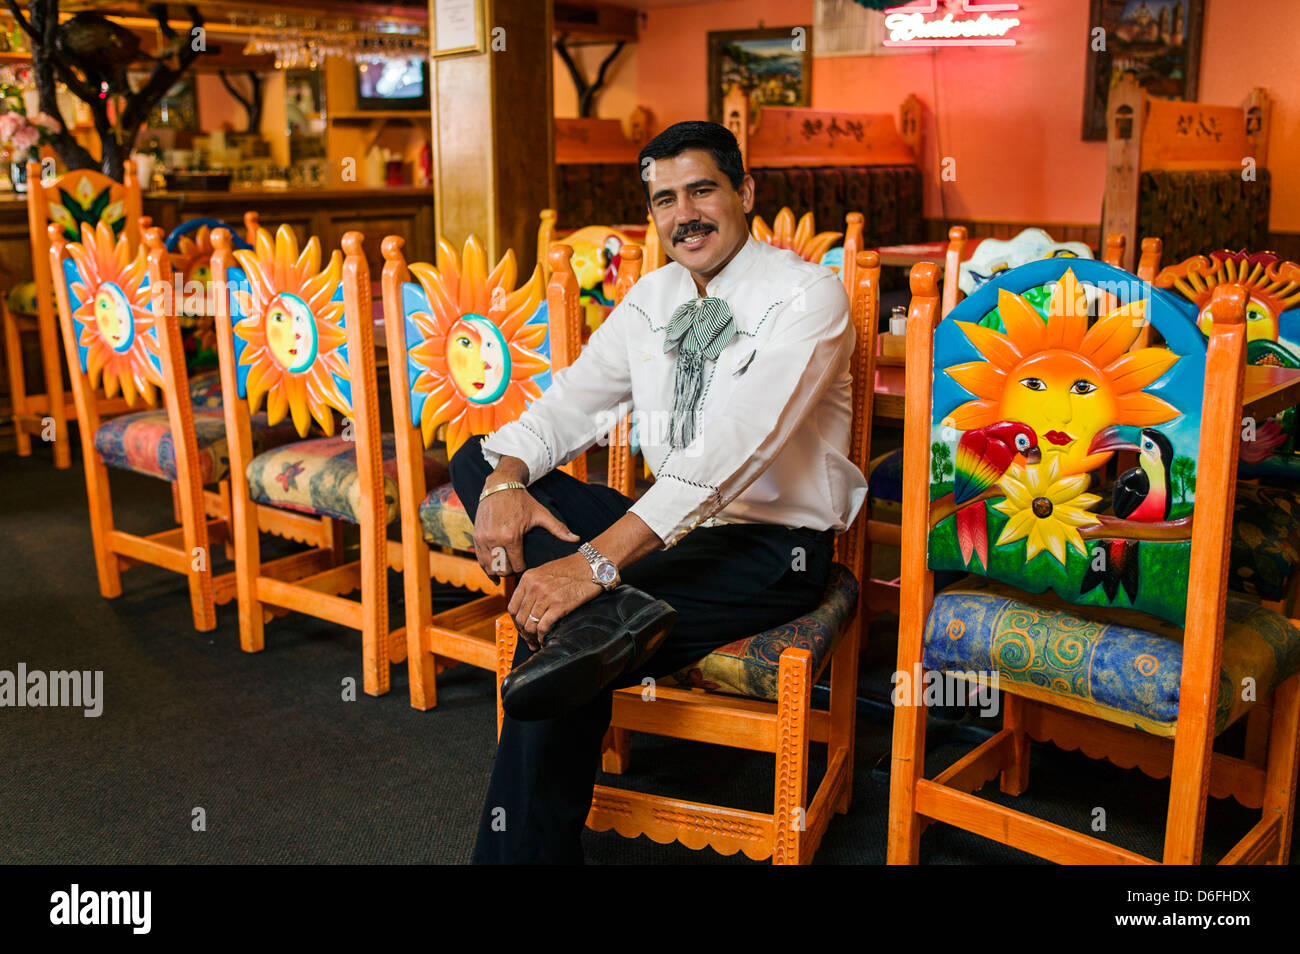 Male Mexican Waiter Photographed In Fiesta Mexicana Restaurant Stock Photo Alamy